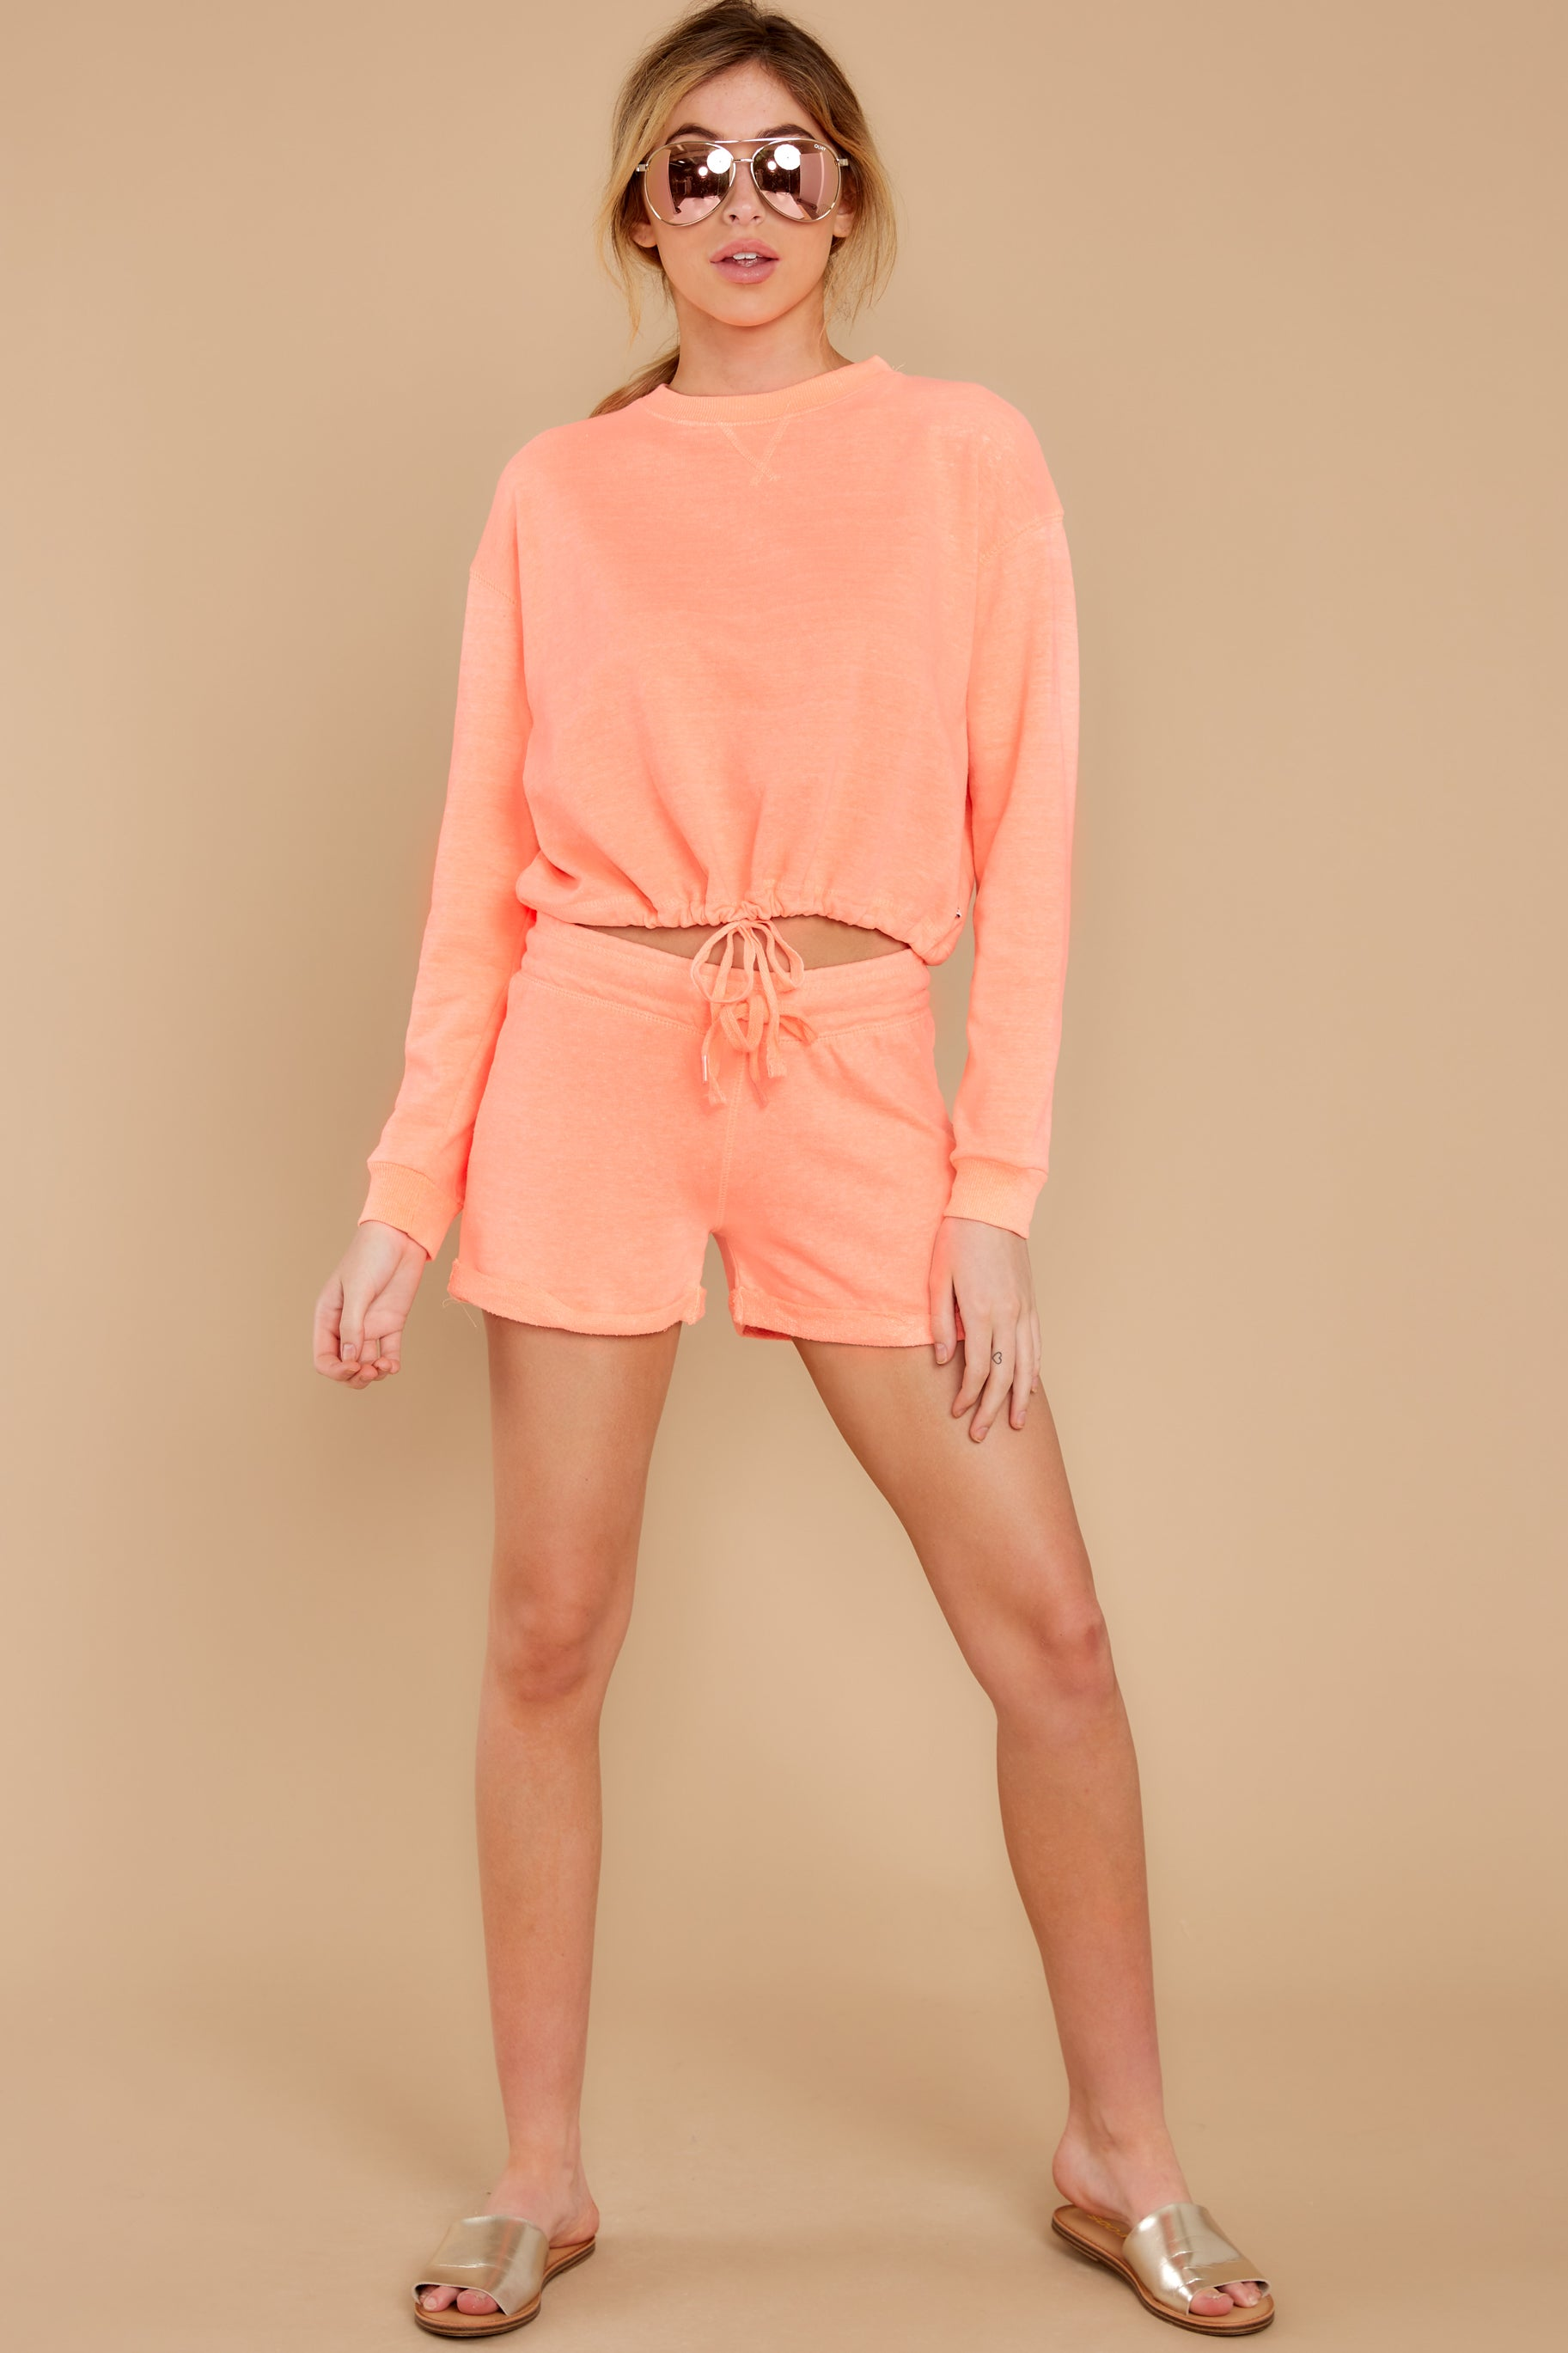 70s Workout Clothes | 80s Tracksuits, Running Shorts, Leotards Cozy As Can Be Coral Orange Sweatshirt $26.00 AT vintagedancer.com